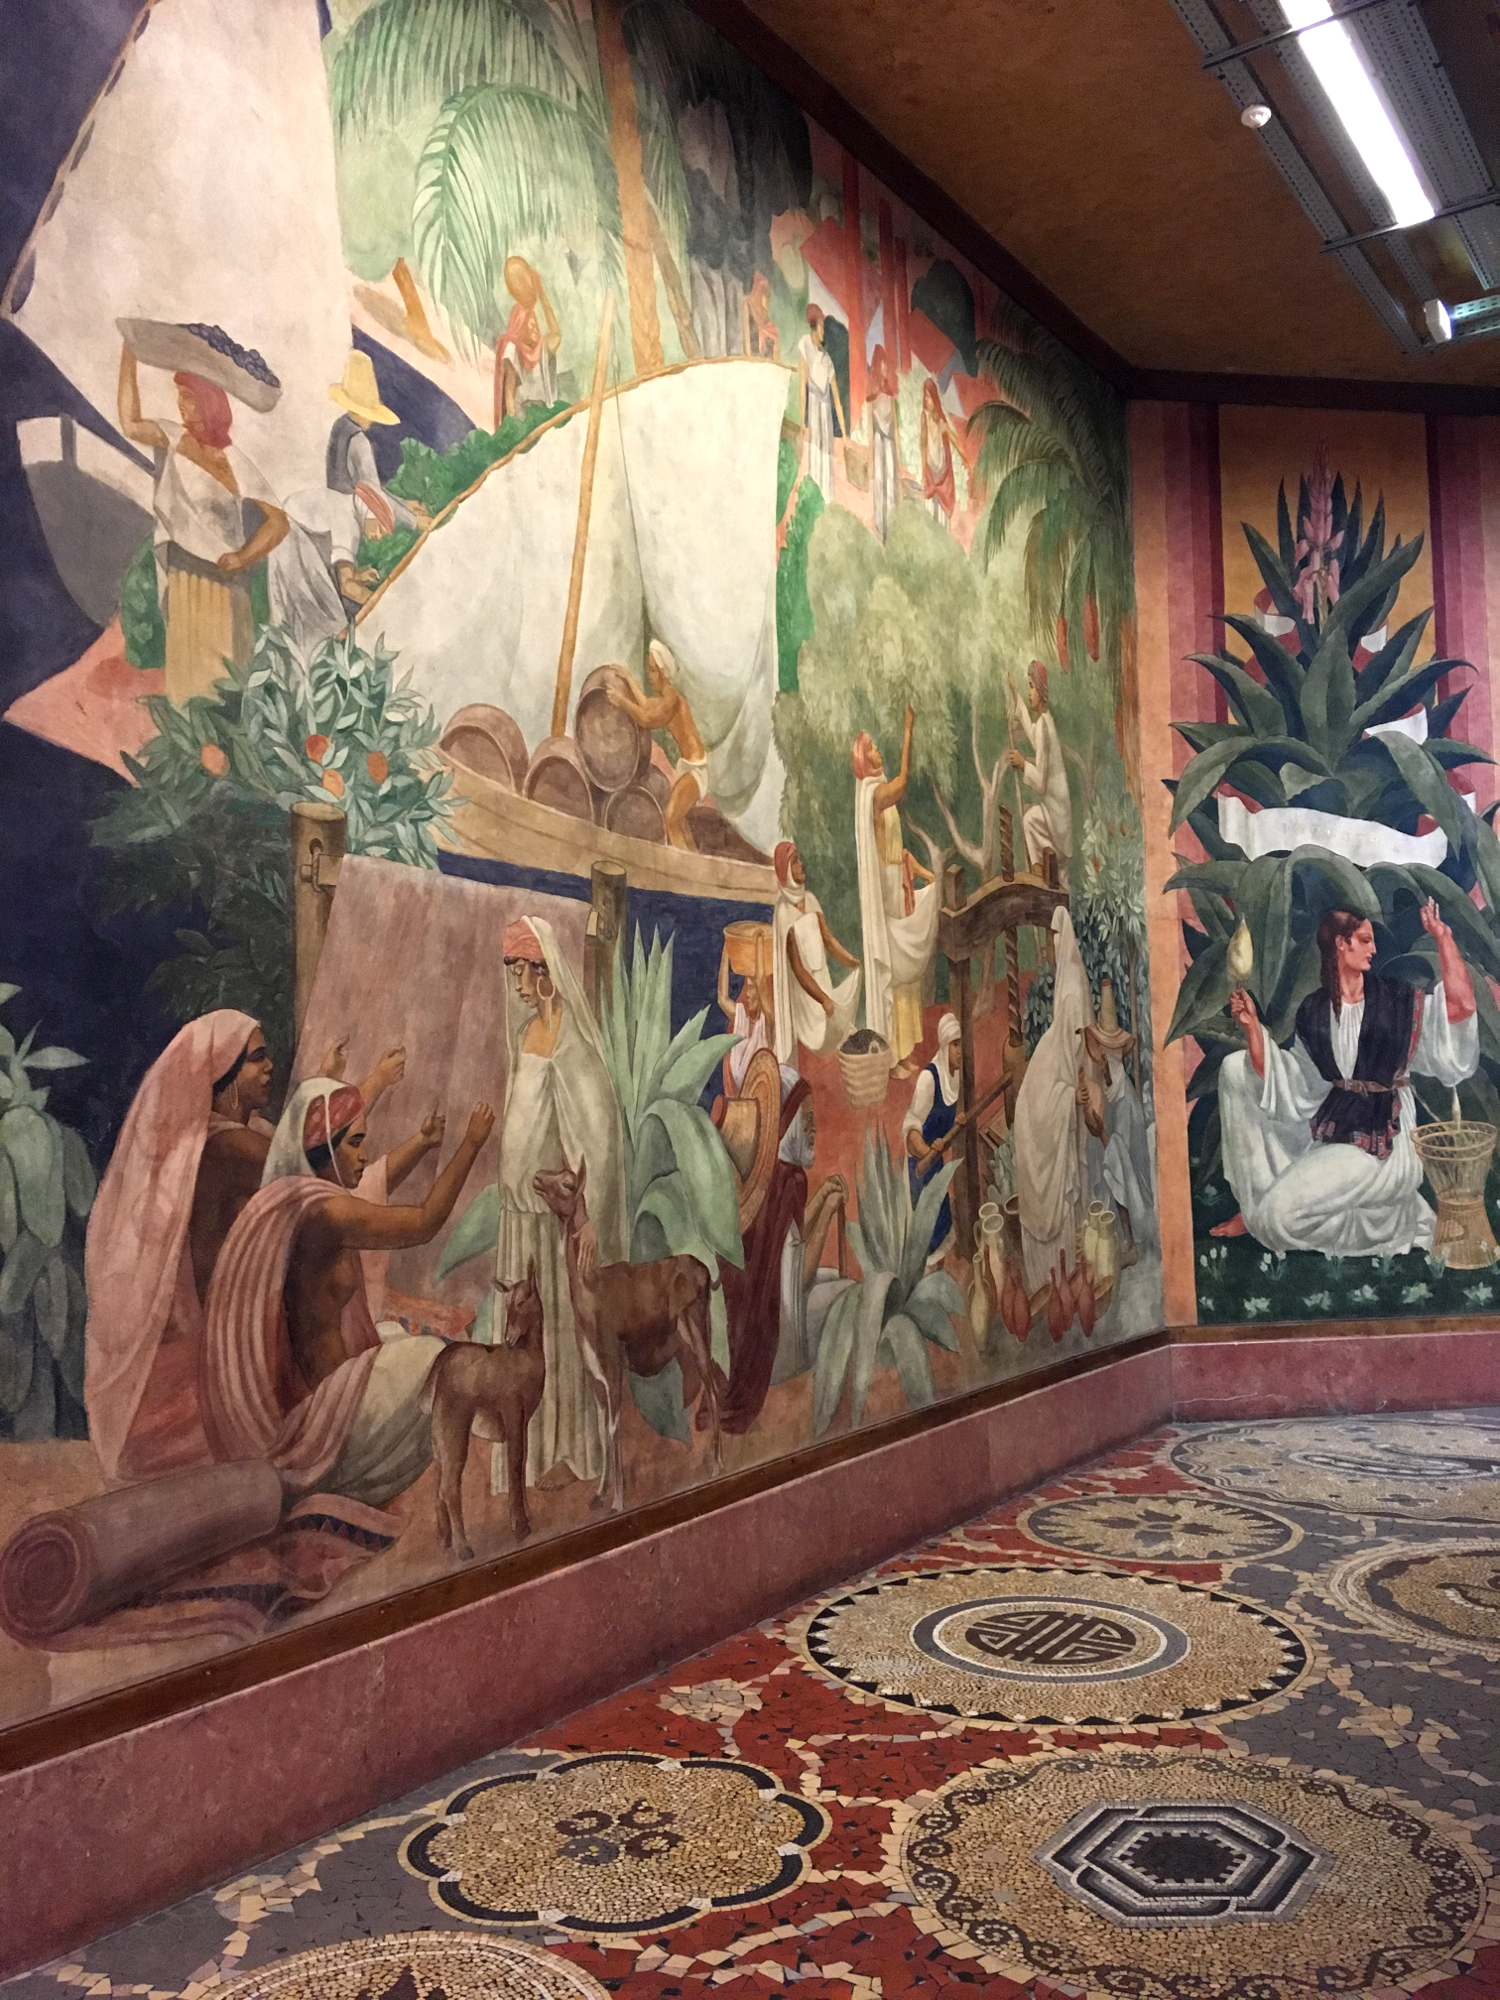 rocaille-blog-paris-palais-de-la-porte-doree-frescoes-30s-11